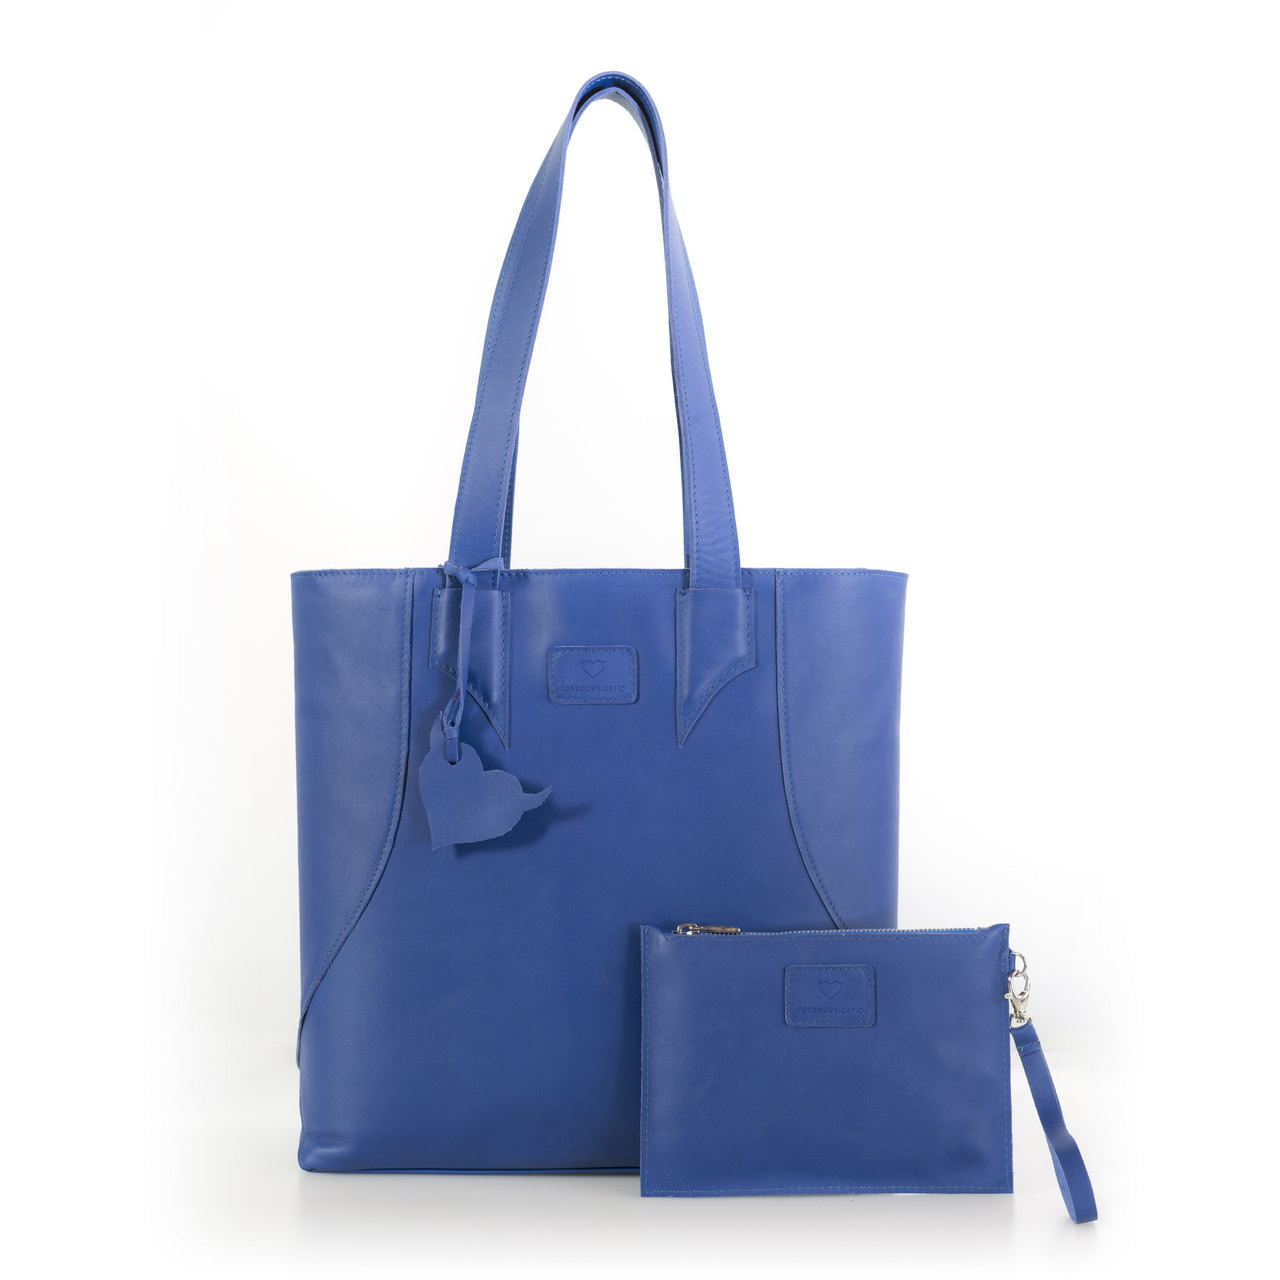 Brava, shopper bag made with real leather